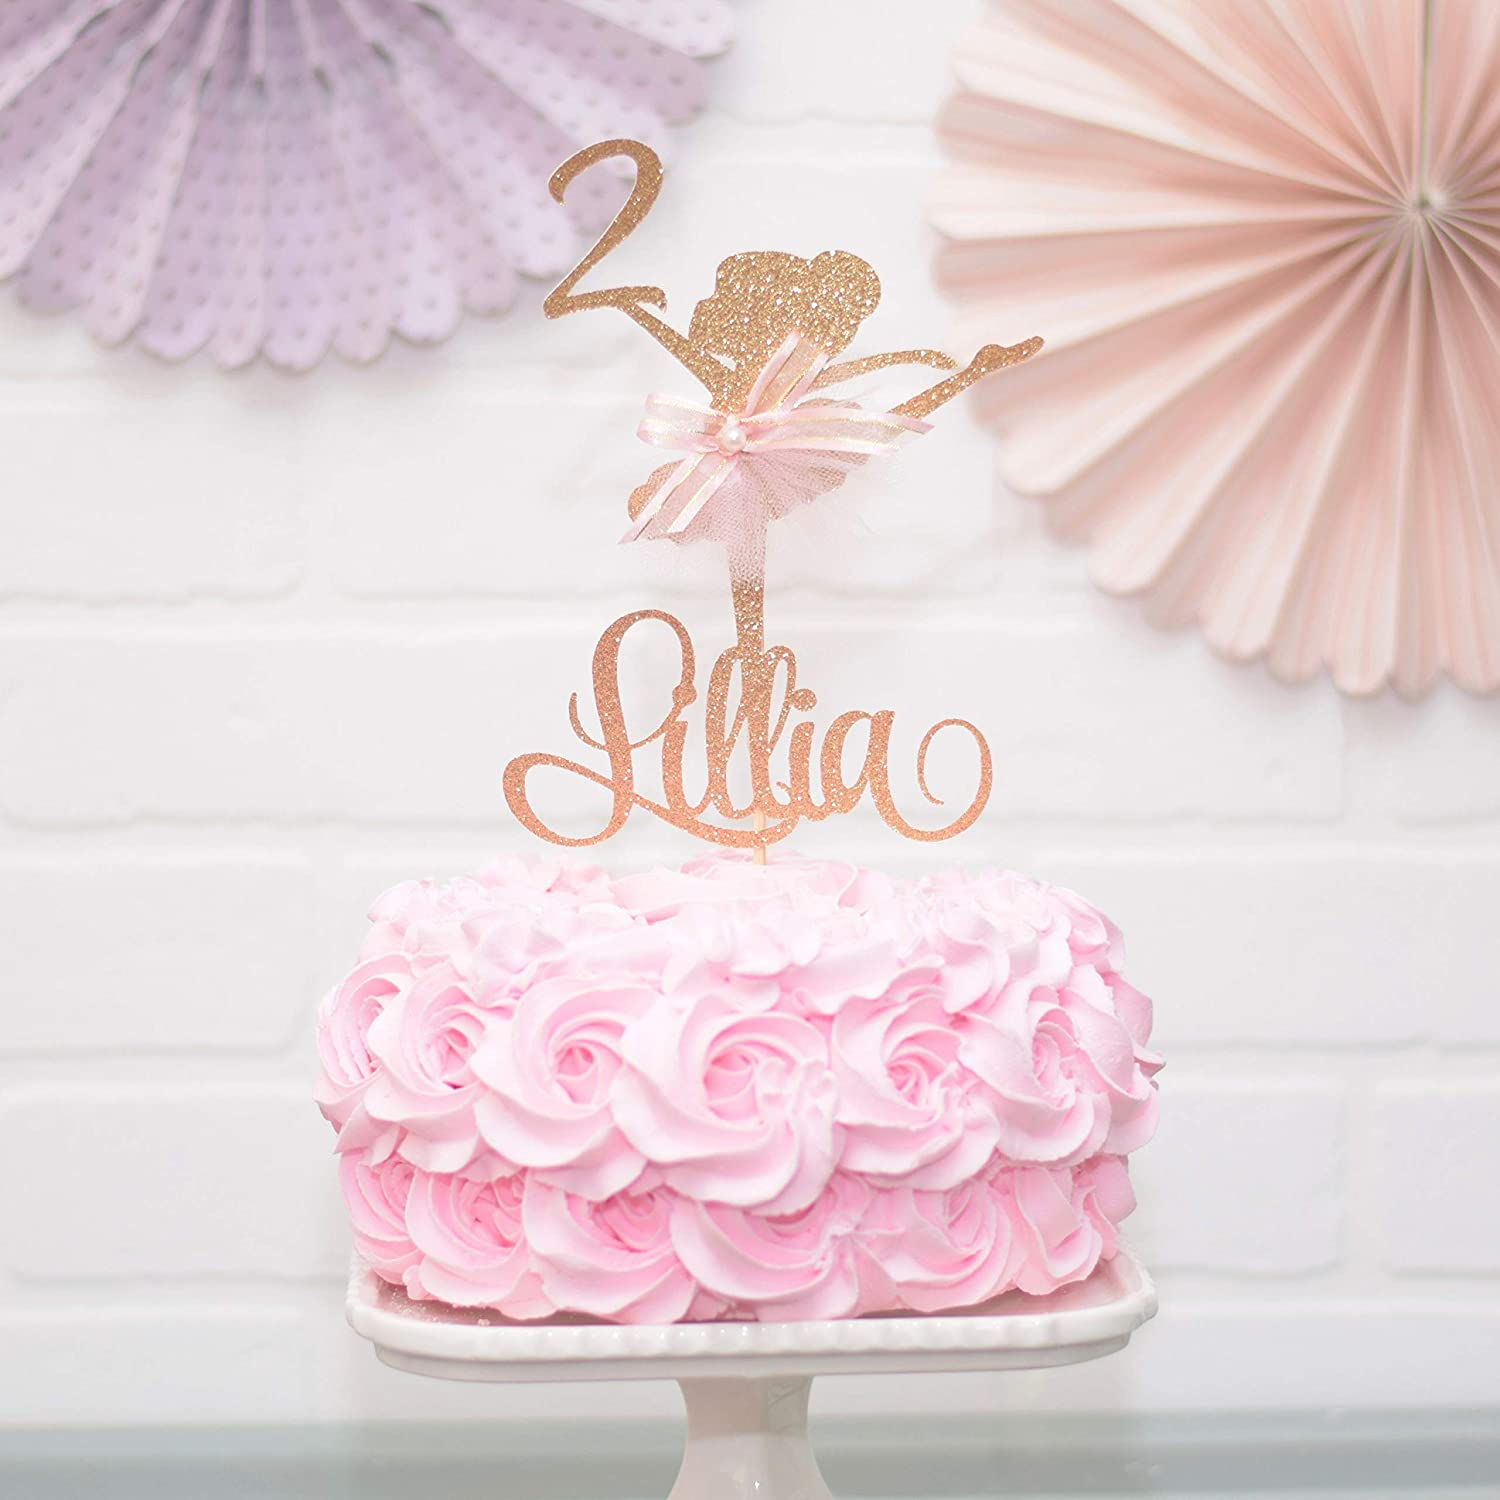 Swell Amazon Com Personalized Ballerina Birthday Party Cake Topper Personalised Birthday Cards Paralily Jamesorg